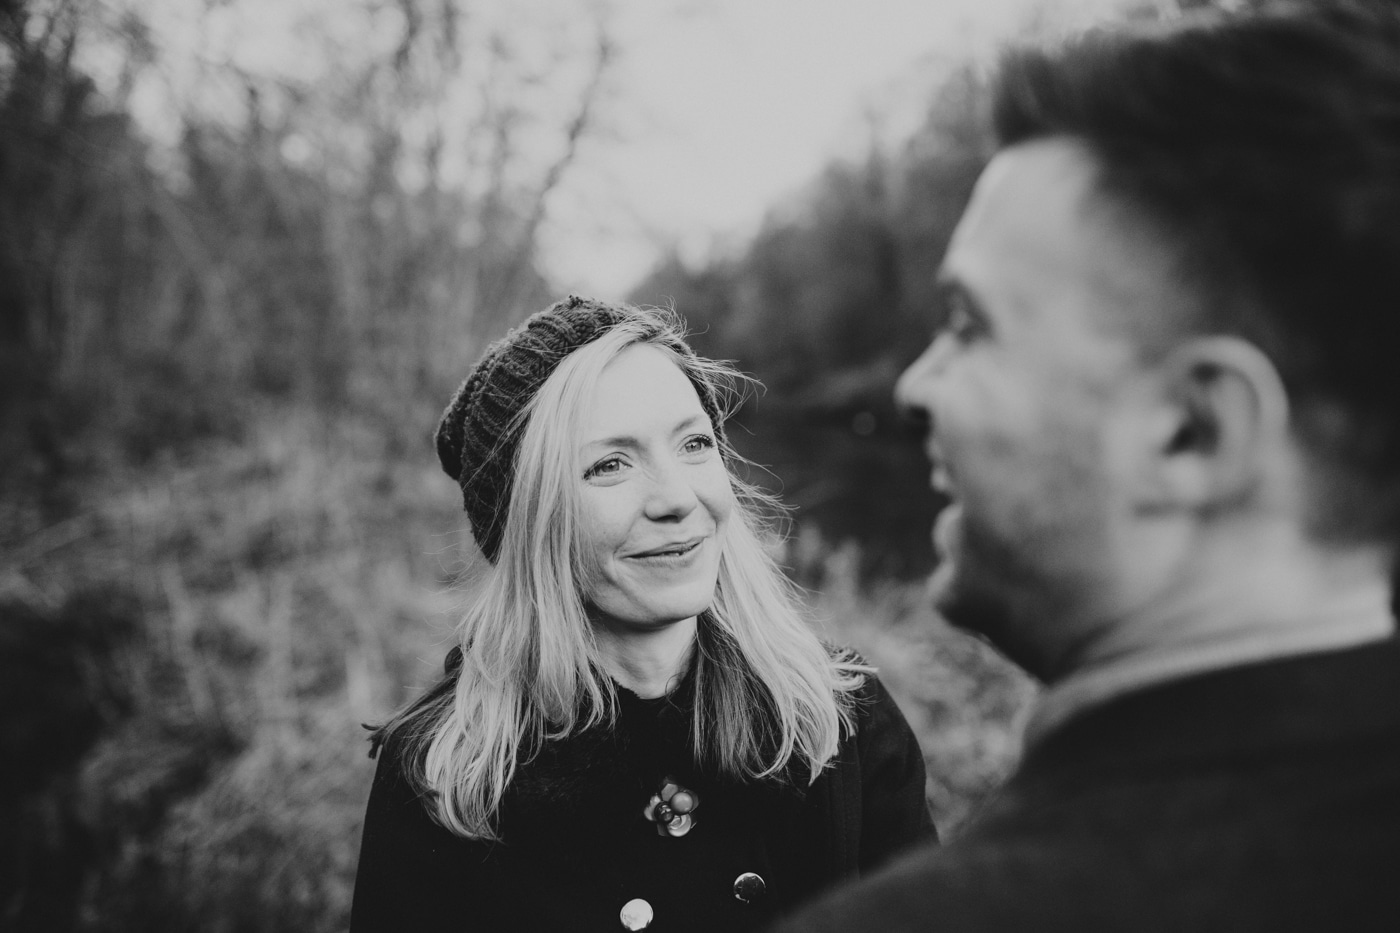 Wife looking at laughing husband by Joshua Wyborn Photographic